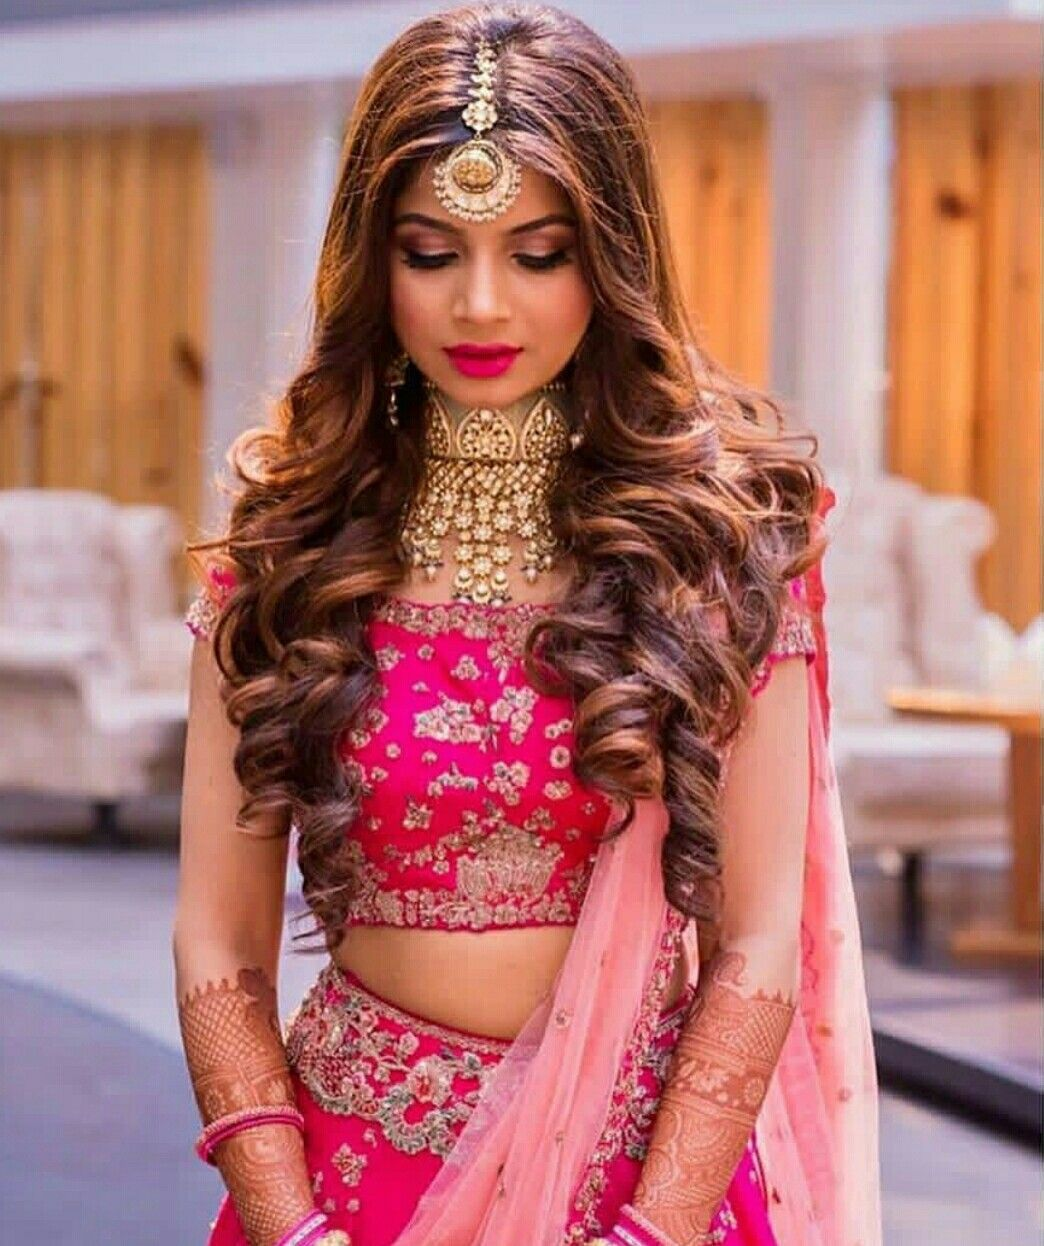 pin by leena shah on wedding hairstyles | indian bride